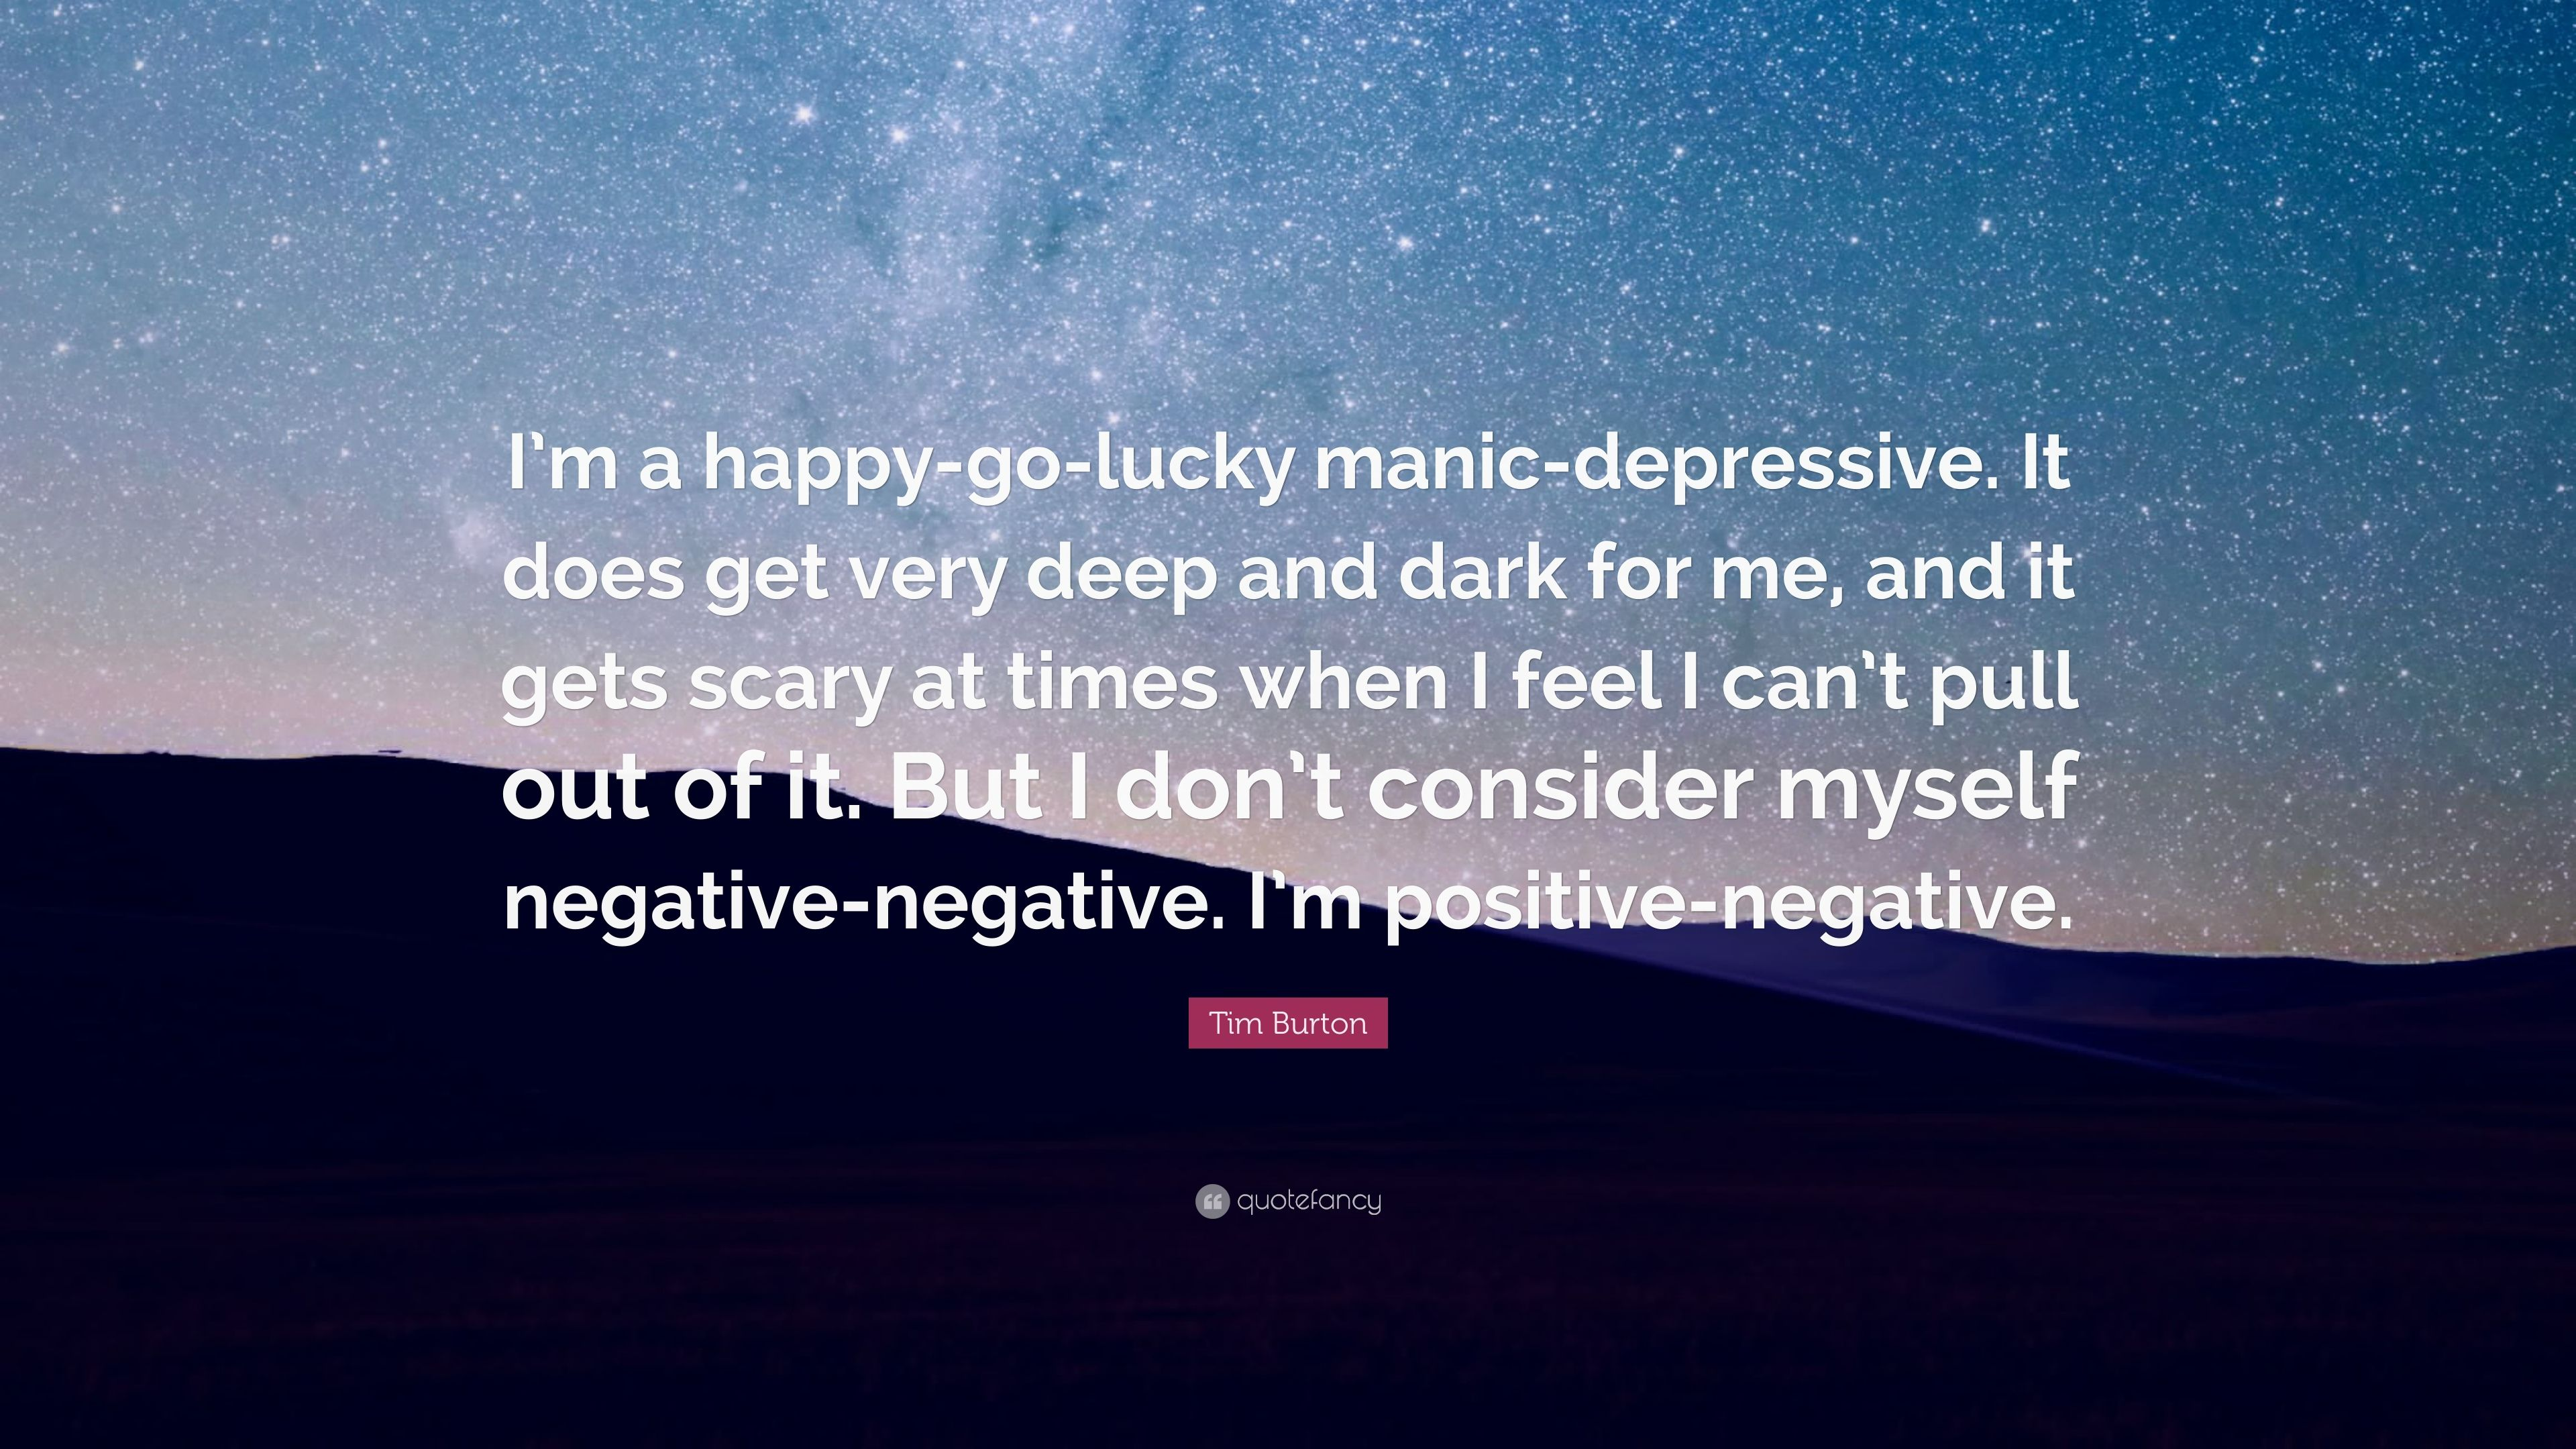 3840x2160 Depression Quotes (40 wallpapers) - Quotefancy